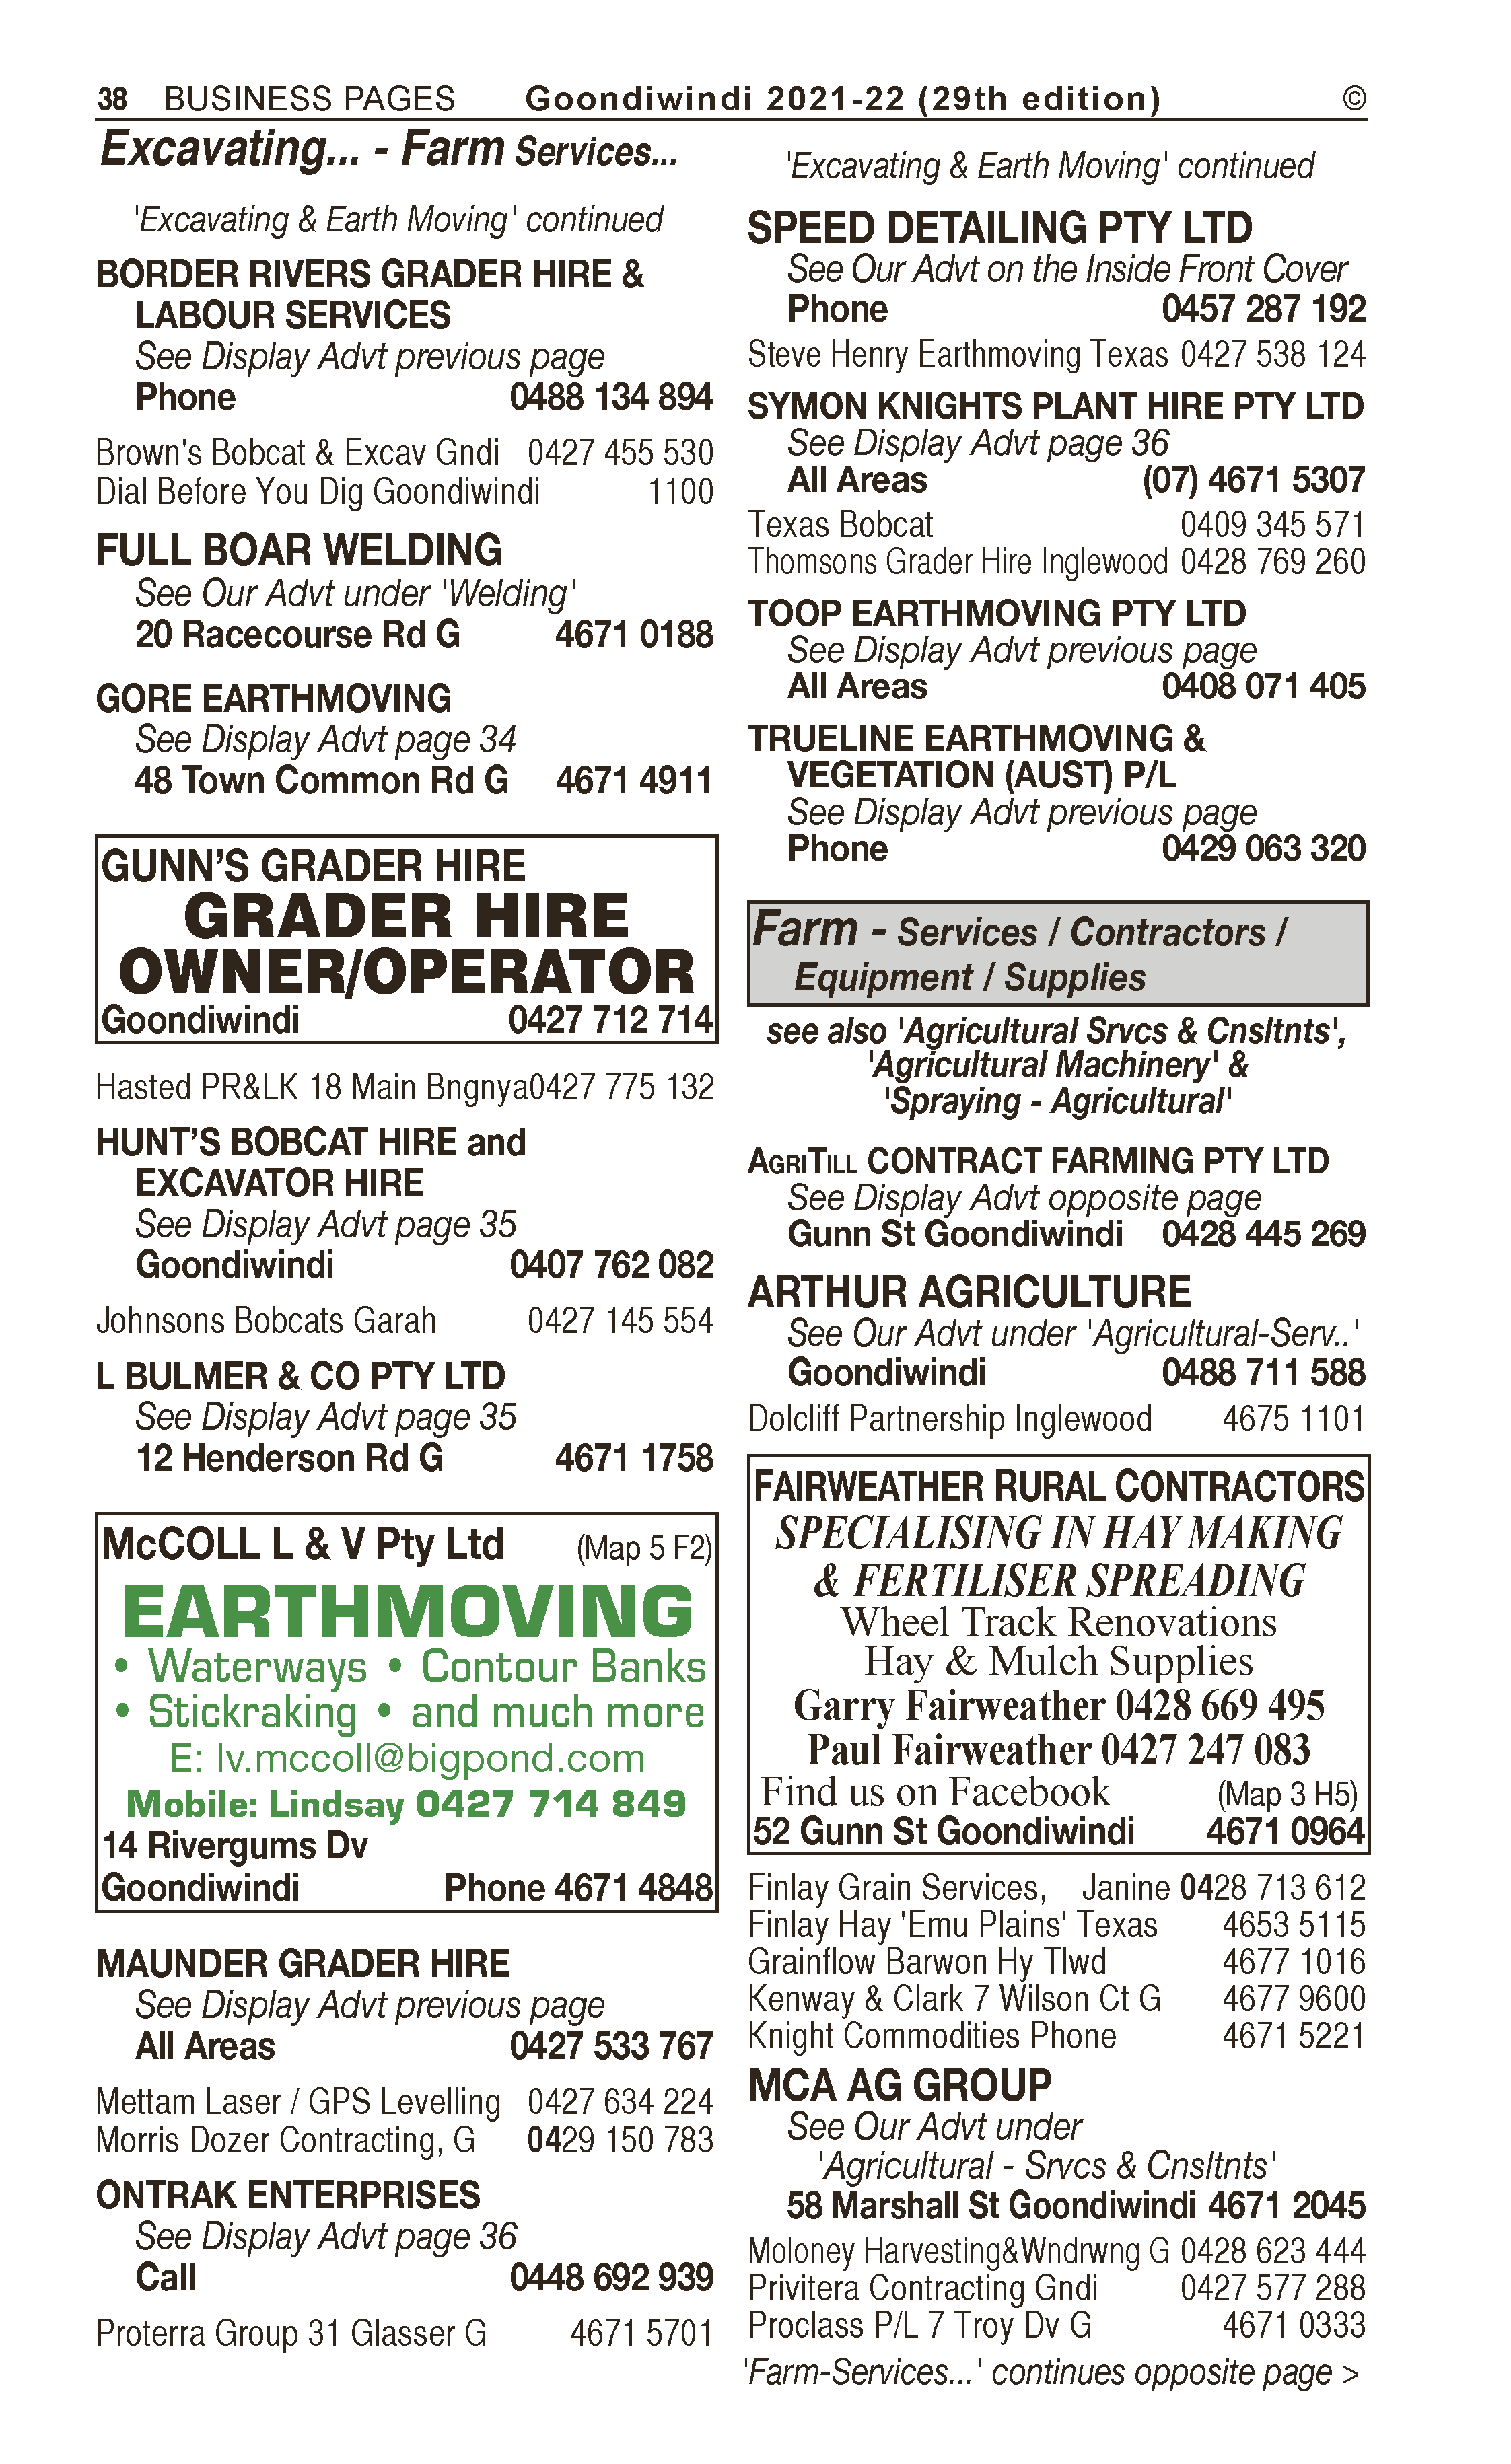 Diesel Care | Agricultural – Machinery & Services in Goondiwindi | PBezy Pocket Books local directories - page 38